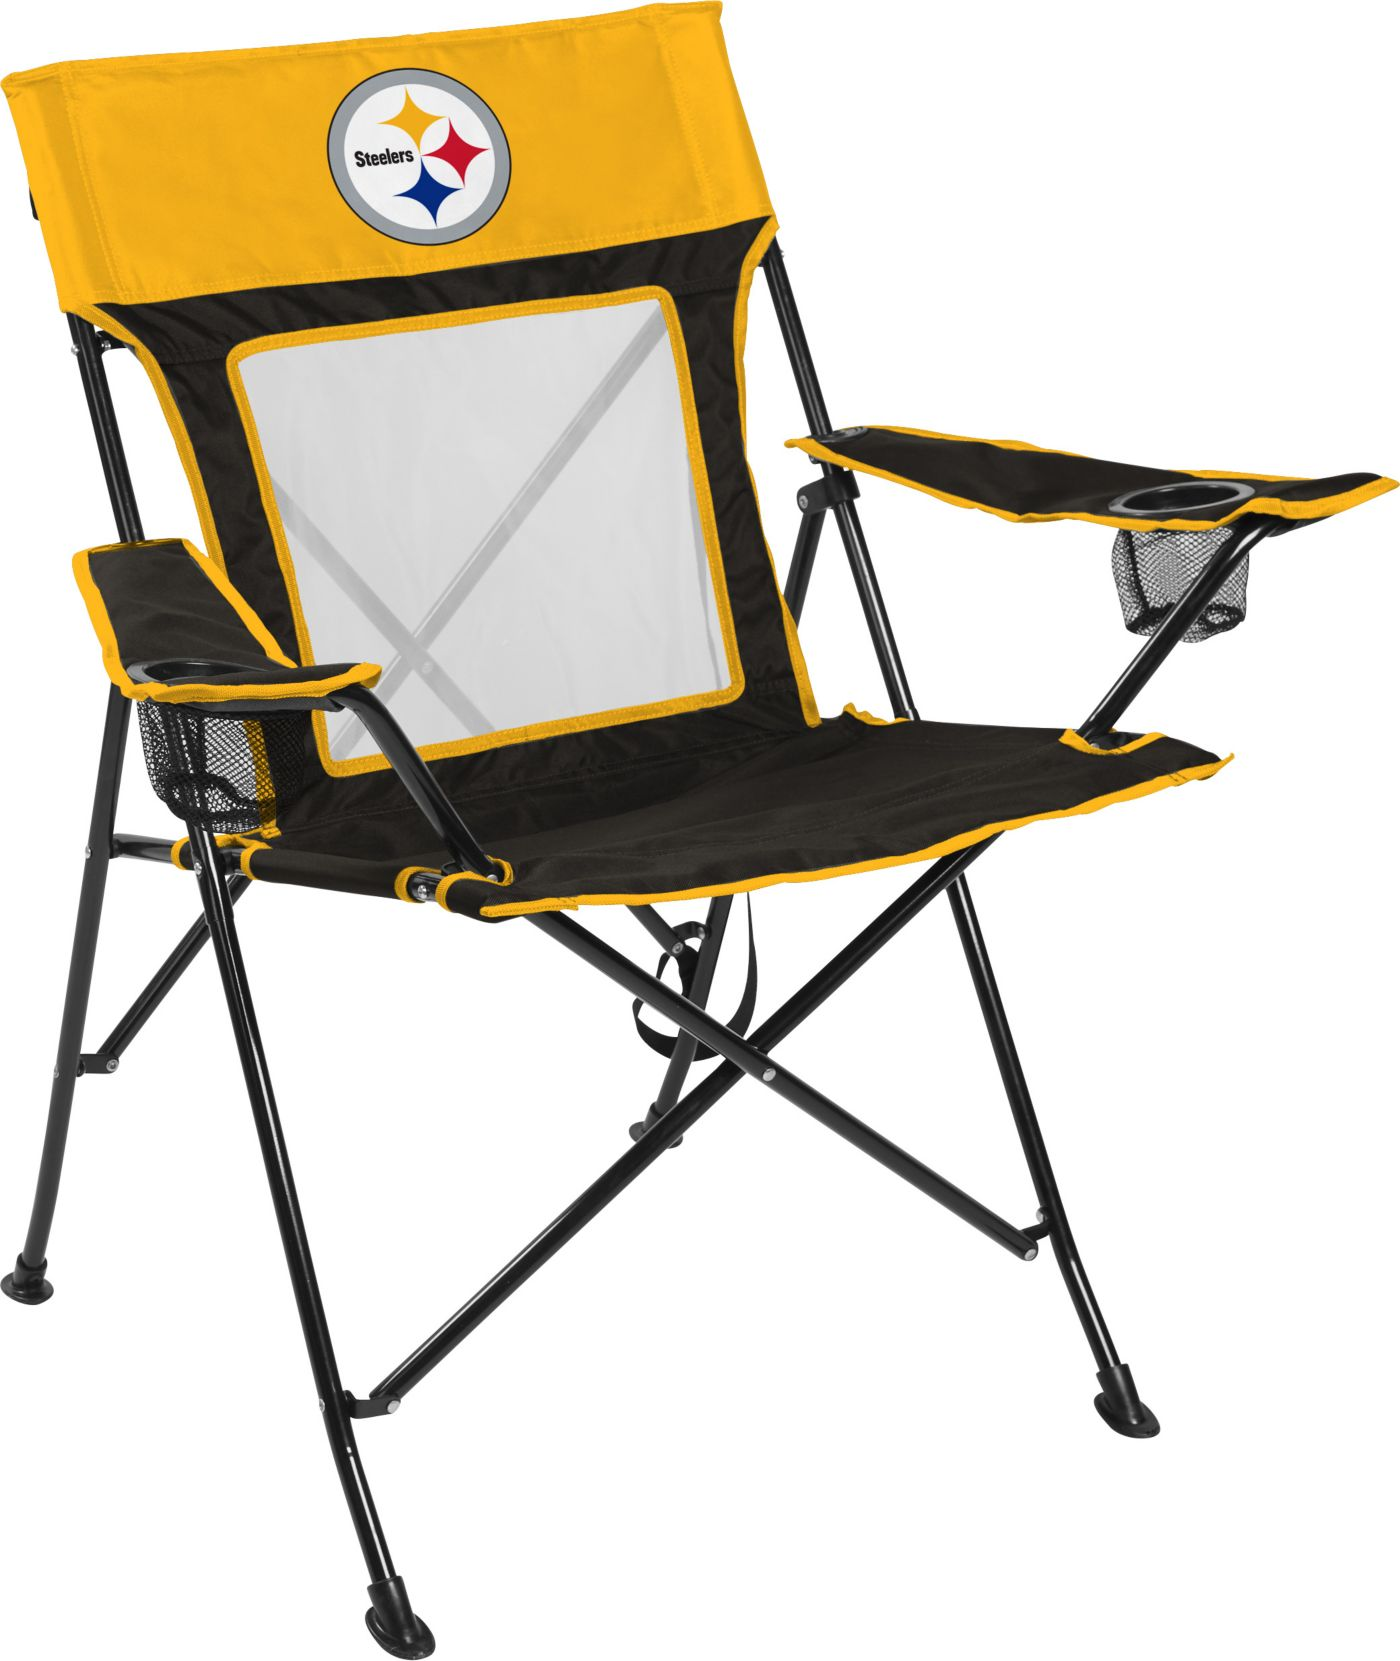 Rawlings Pittsburgh Steelers Game Changer Chair